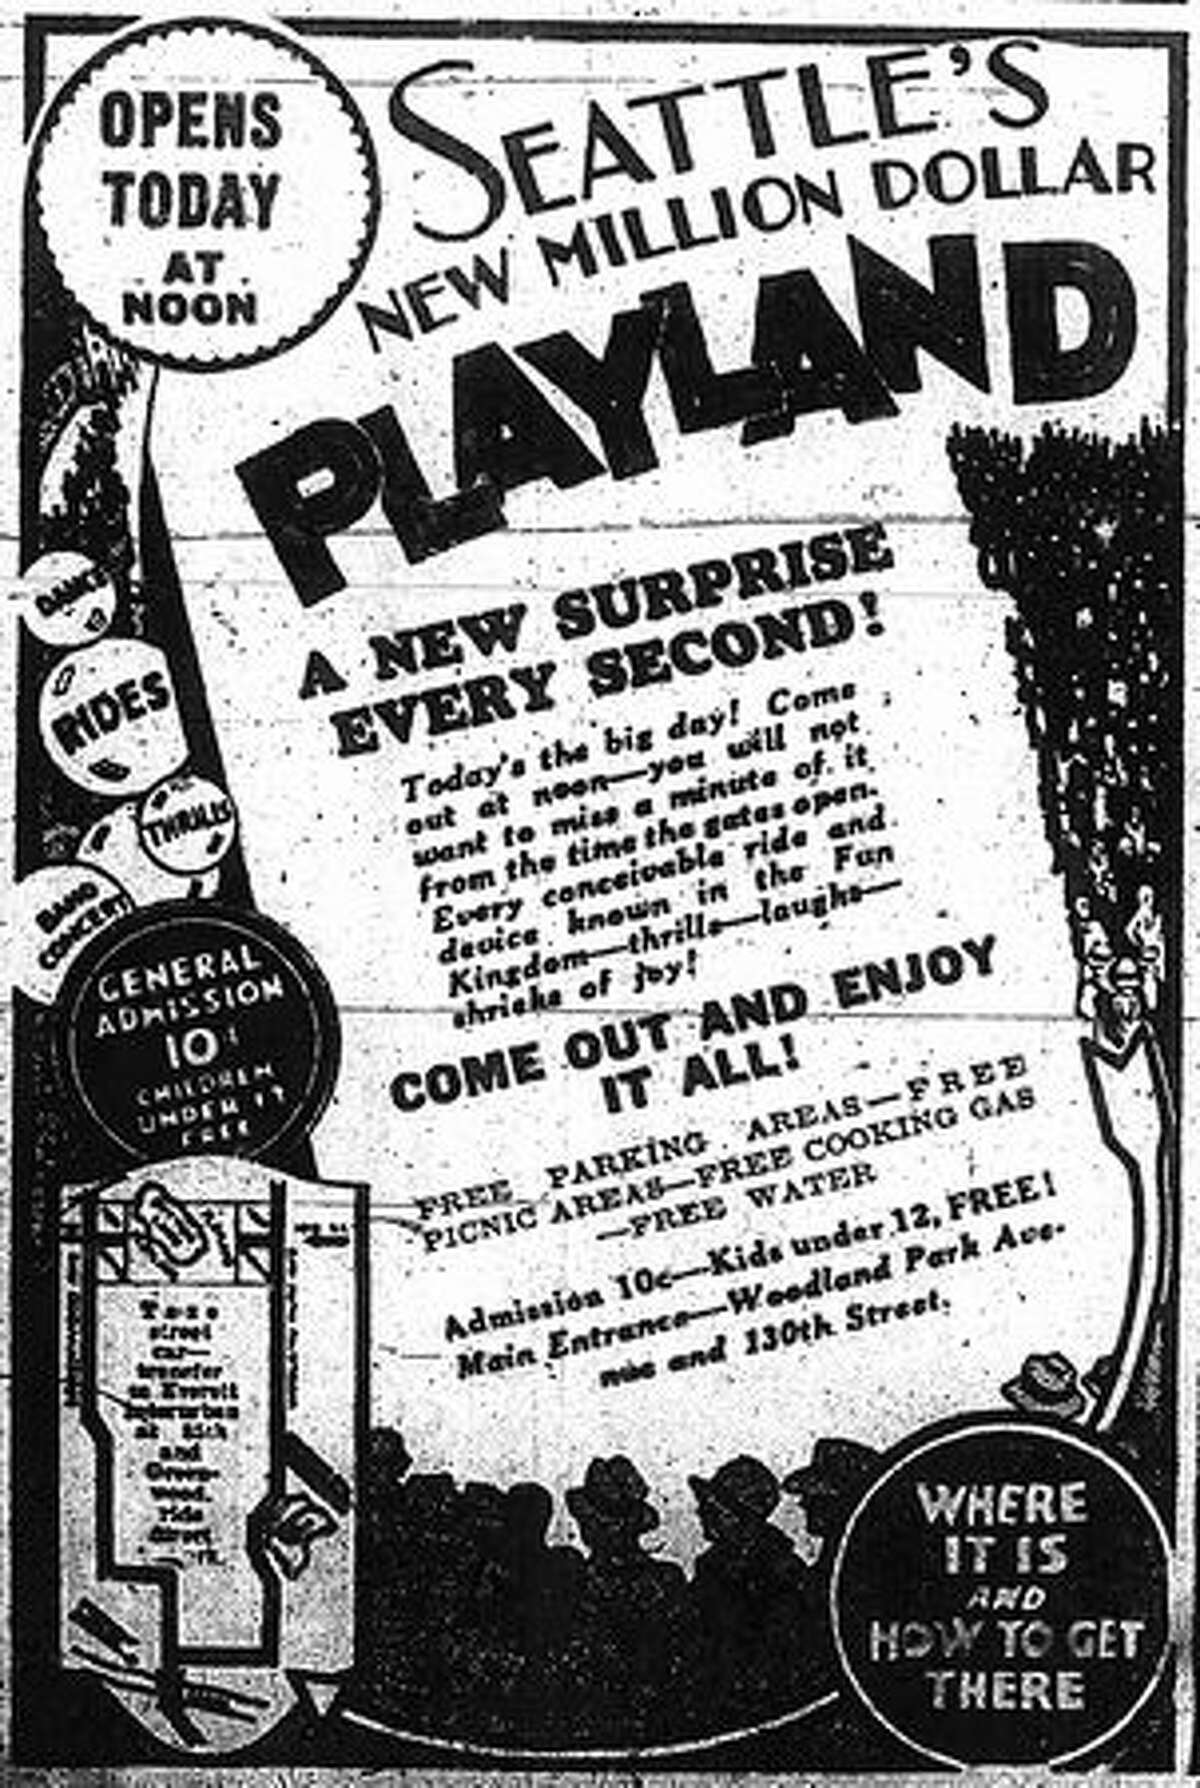 A May 24, 2010 Seattle Post-Intelligencer ad for the opening of Playland.